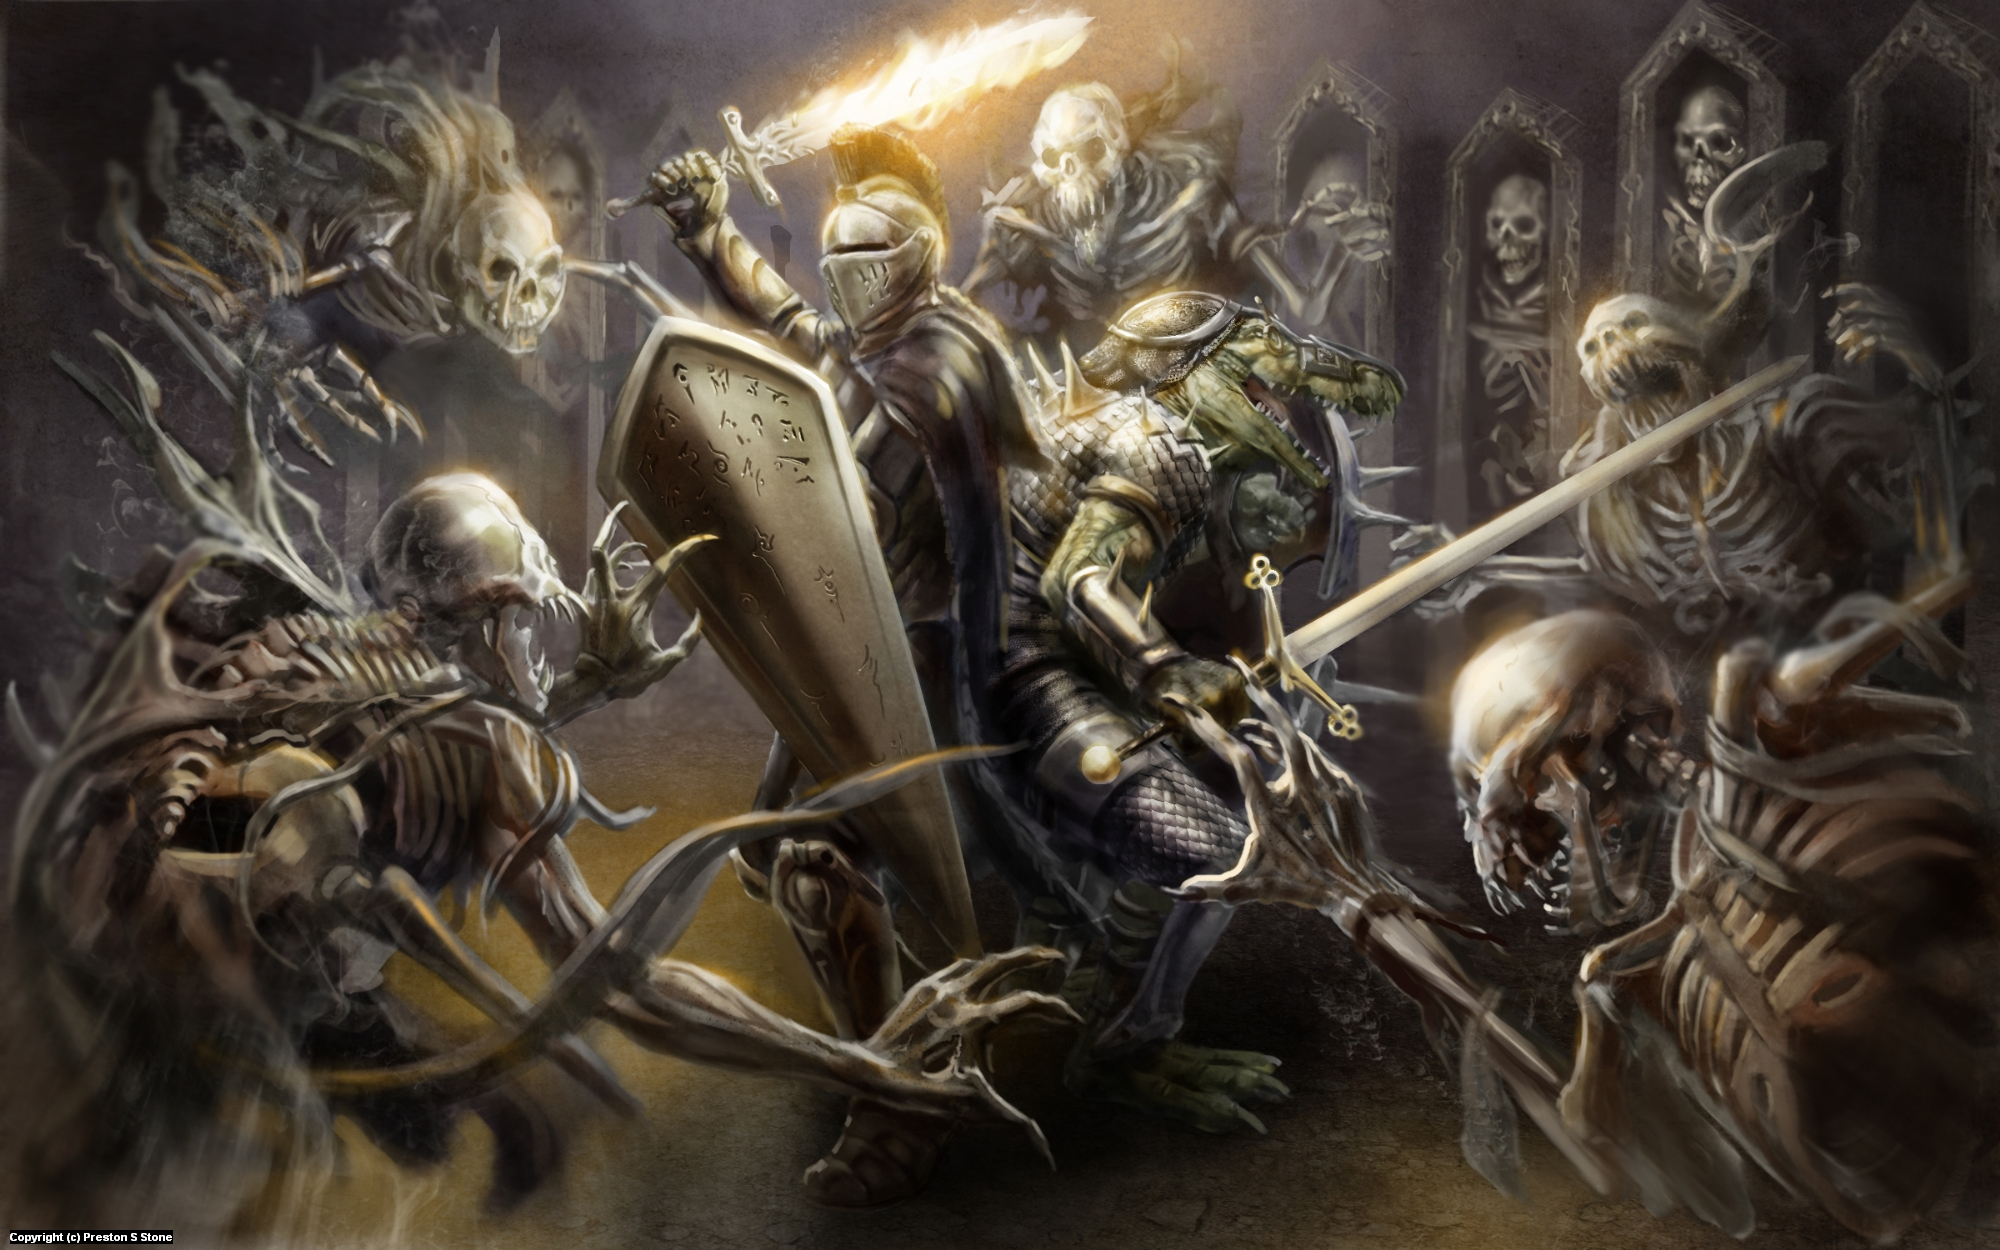 The Catacombs Artwork by Preston Stone